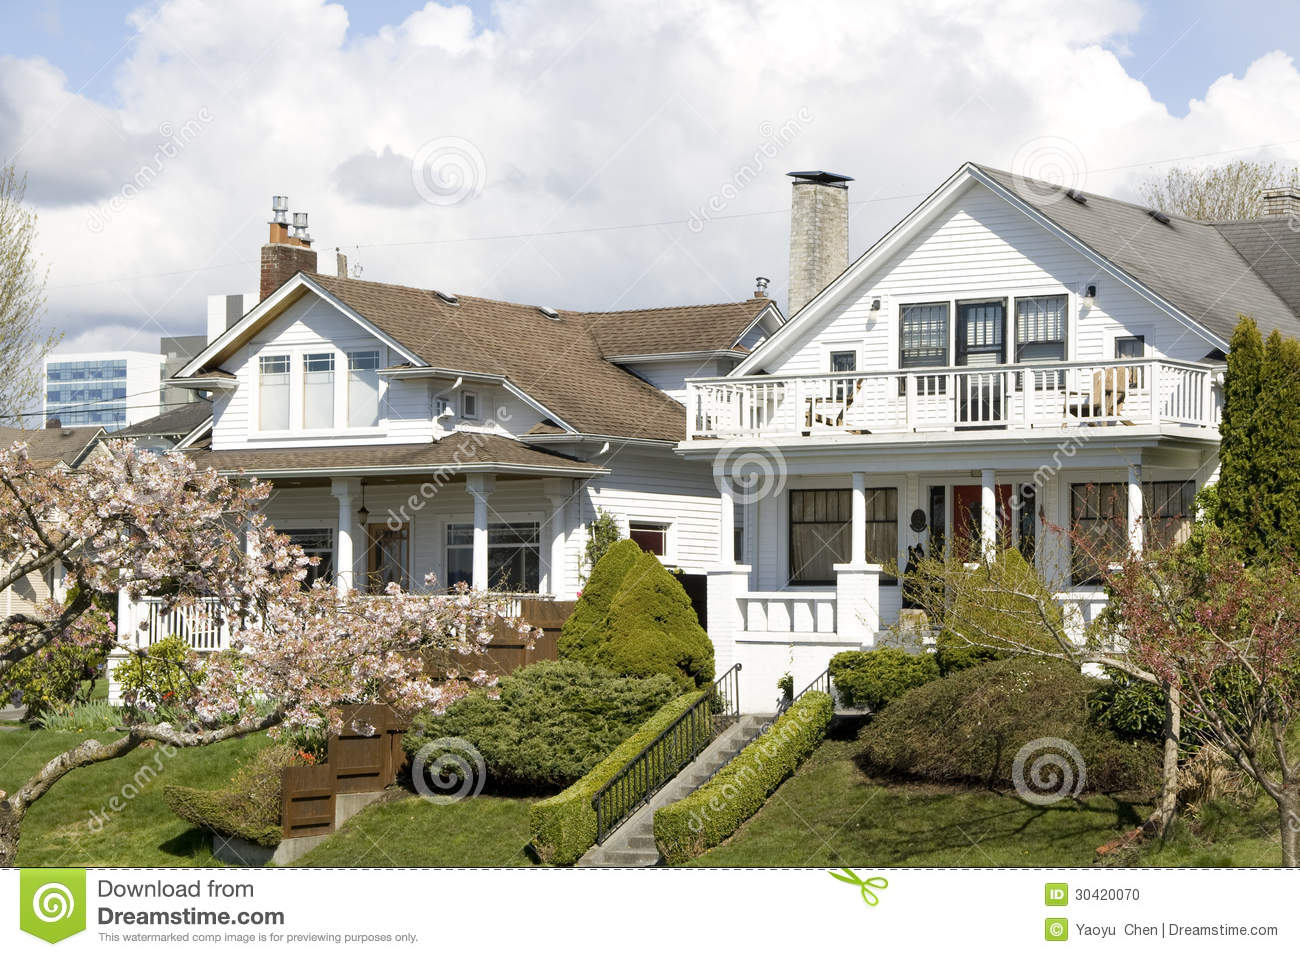 Pictures Of Nice Houses nice houses neighborhood stock photo - image: 30420070